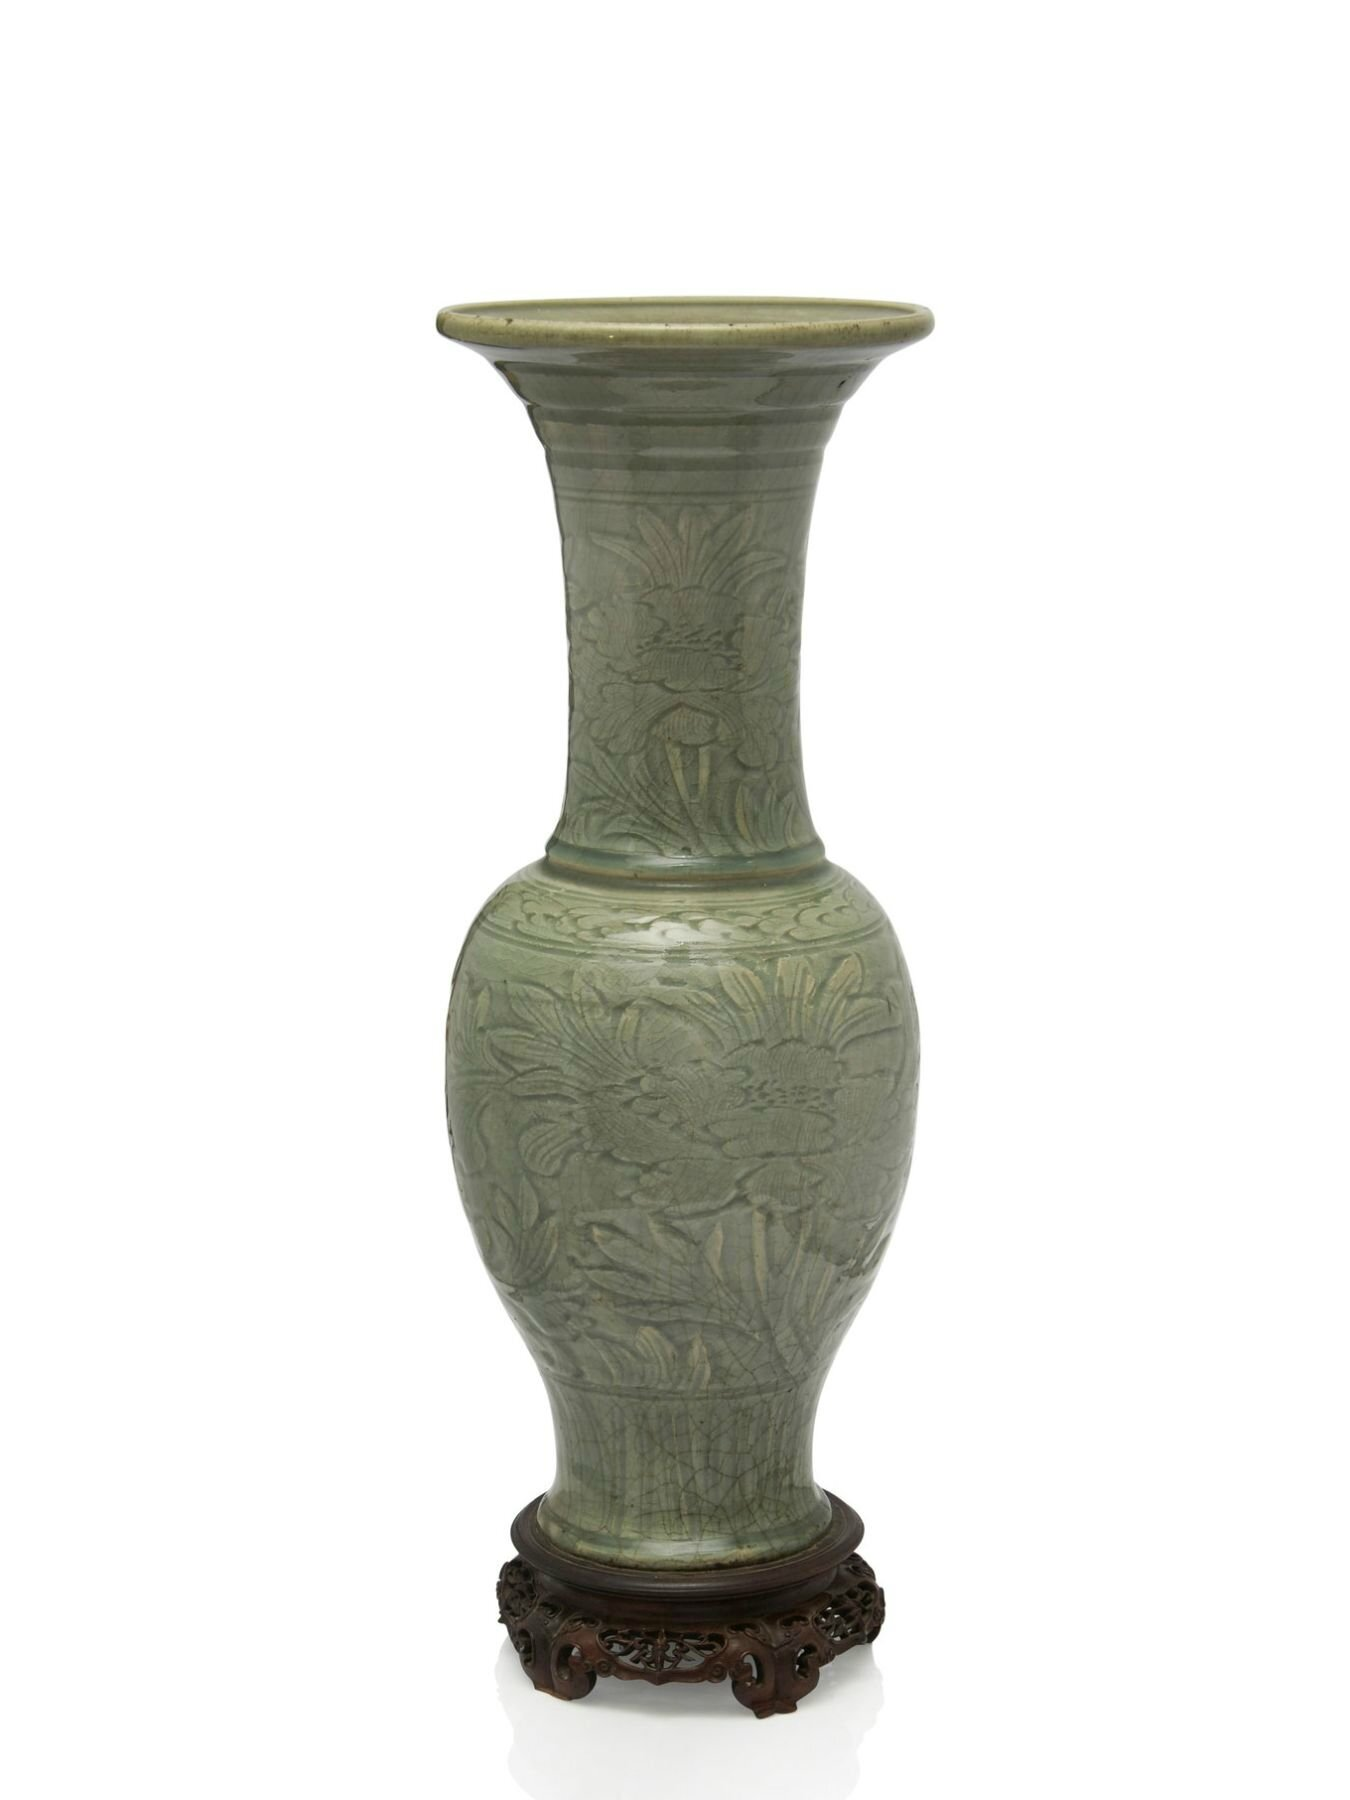 A large Longquan celadon glazed yenyen vase, China, Ming dynasty, 15th-16th century